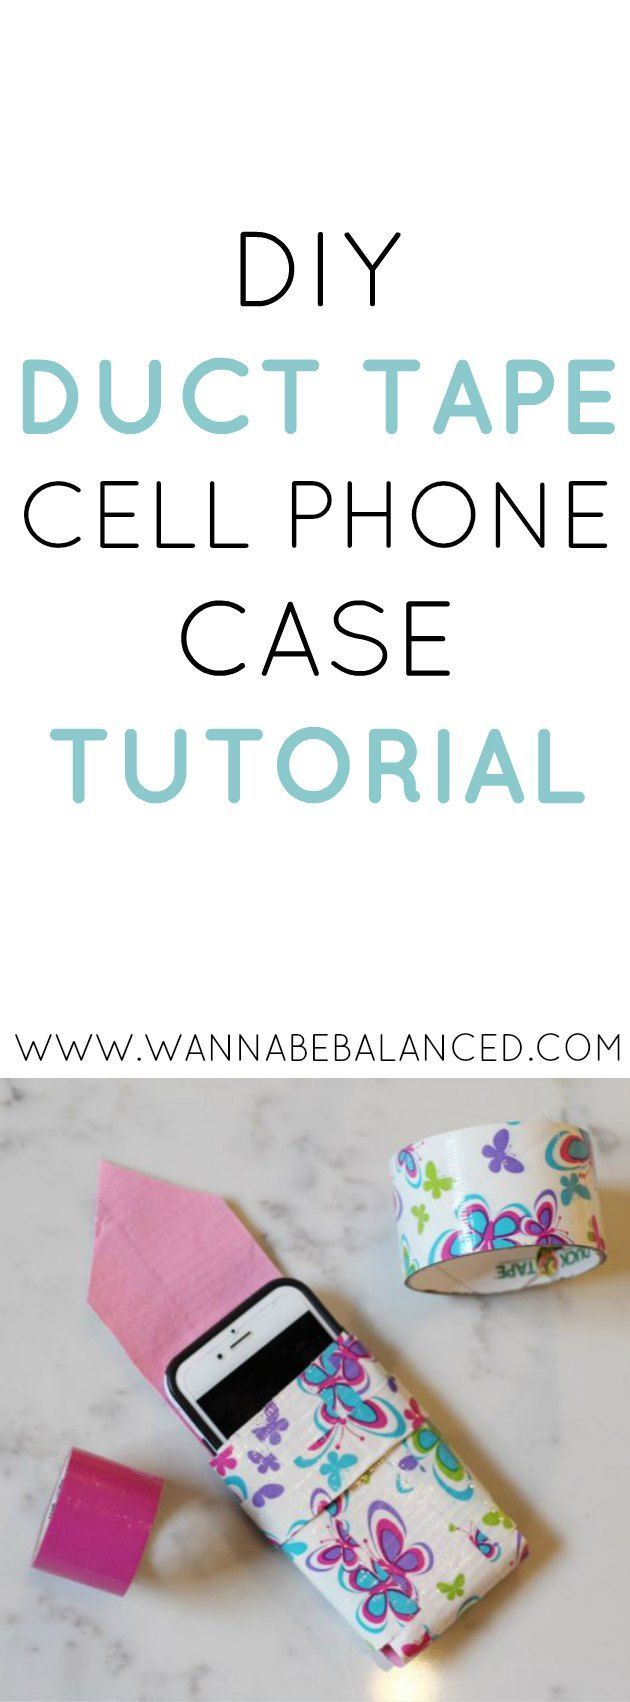 DIY Duct Tape Cell Phone Case Tutorial | how to make things out of duct tape | duct tape DIY | duct tape crafts | how to make your own cell phone case | DIY duct tape tutorials | unique craft ideas || Wannabe Balanced Blog